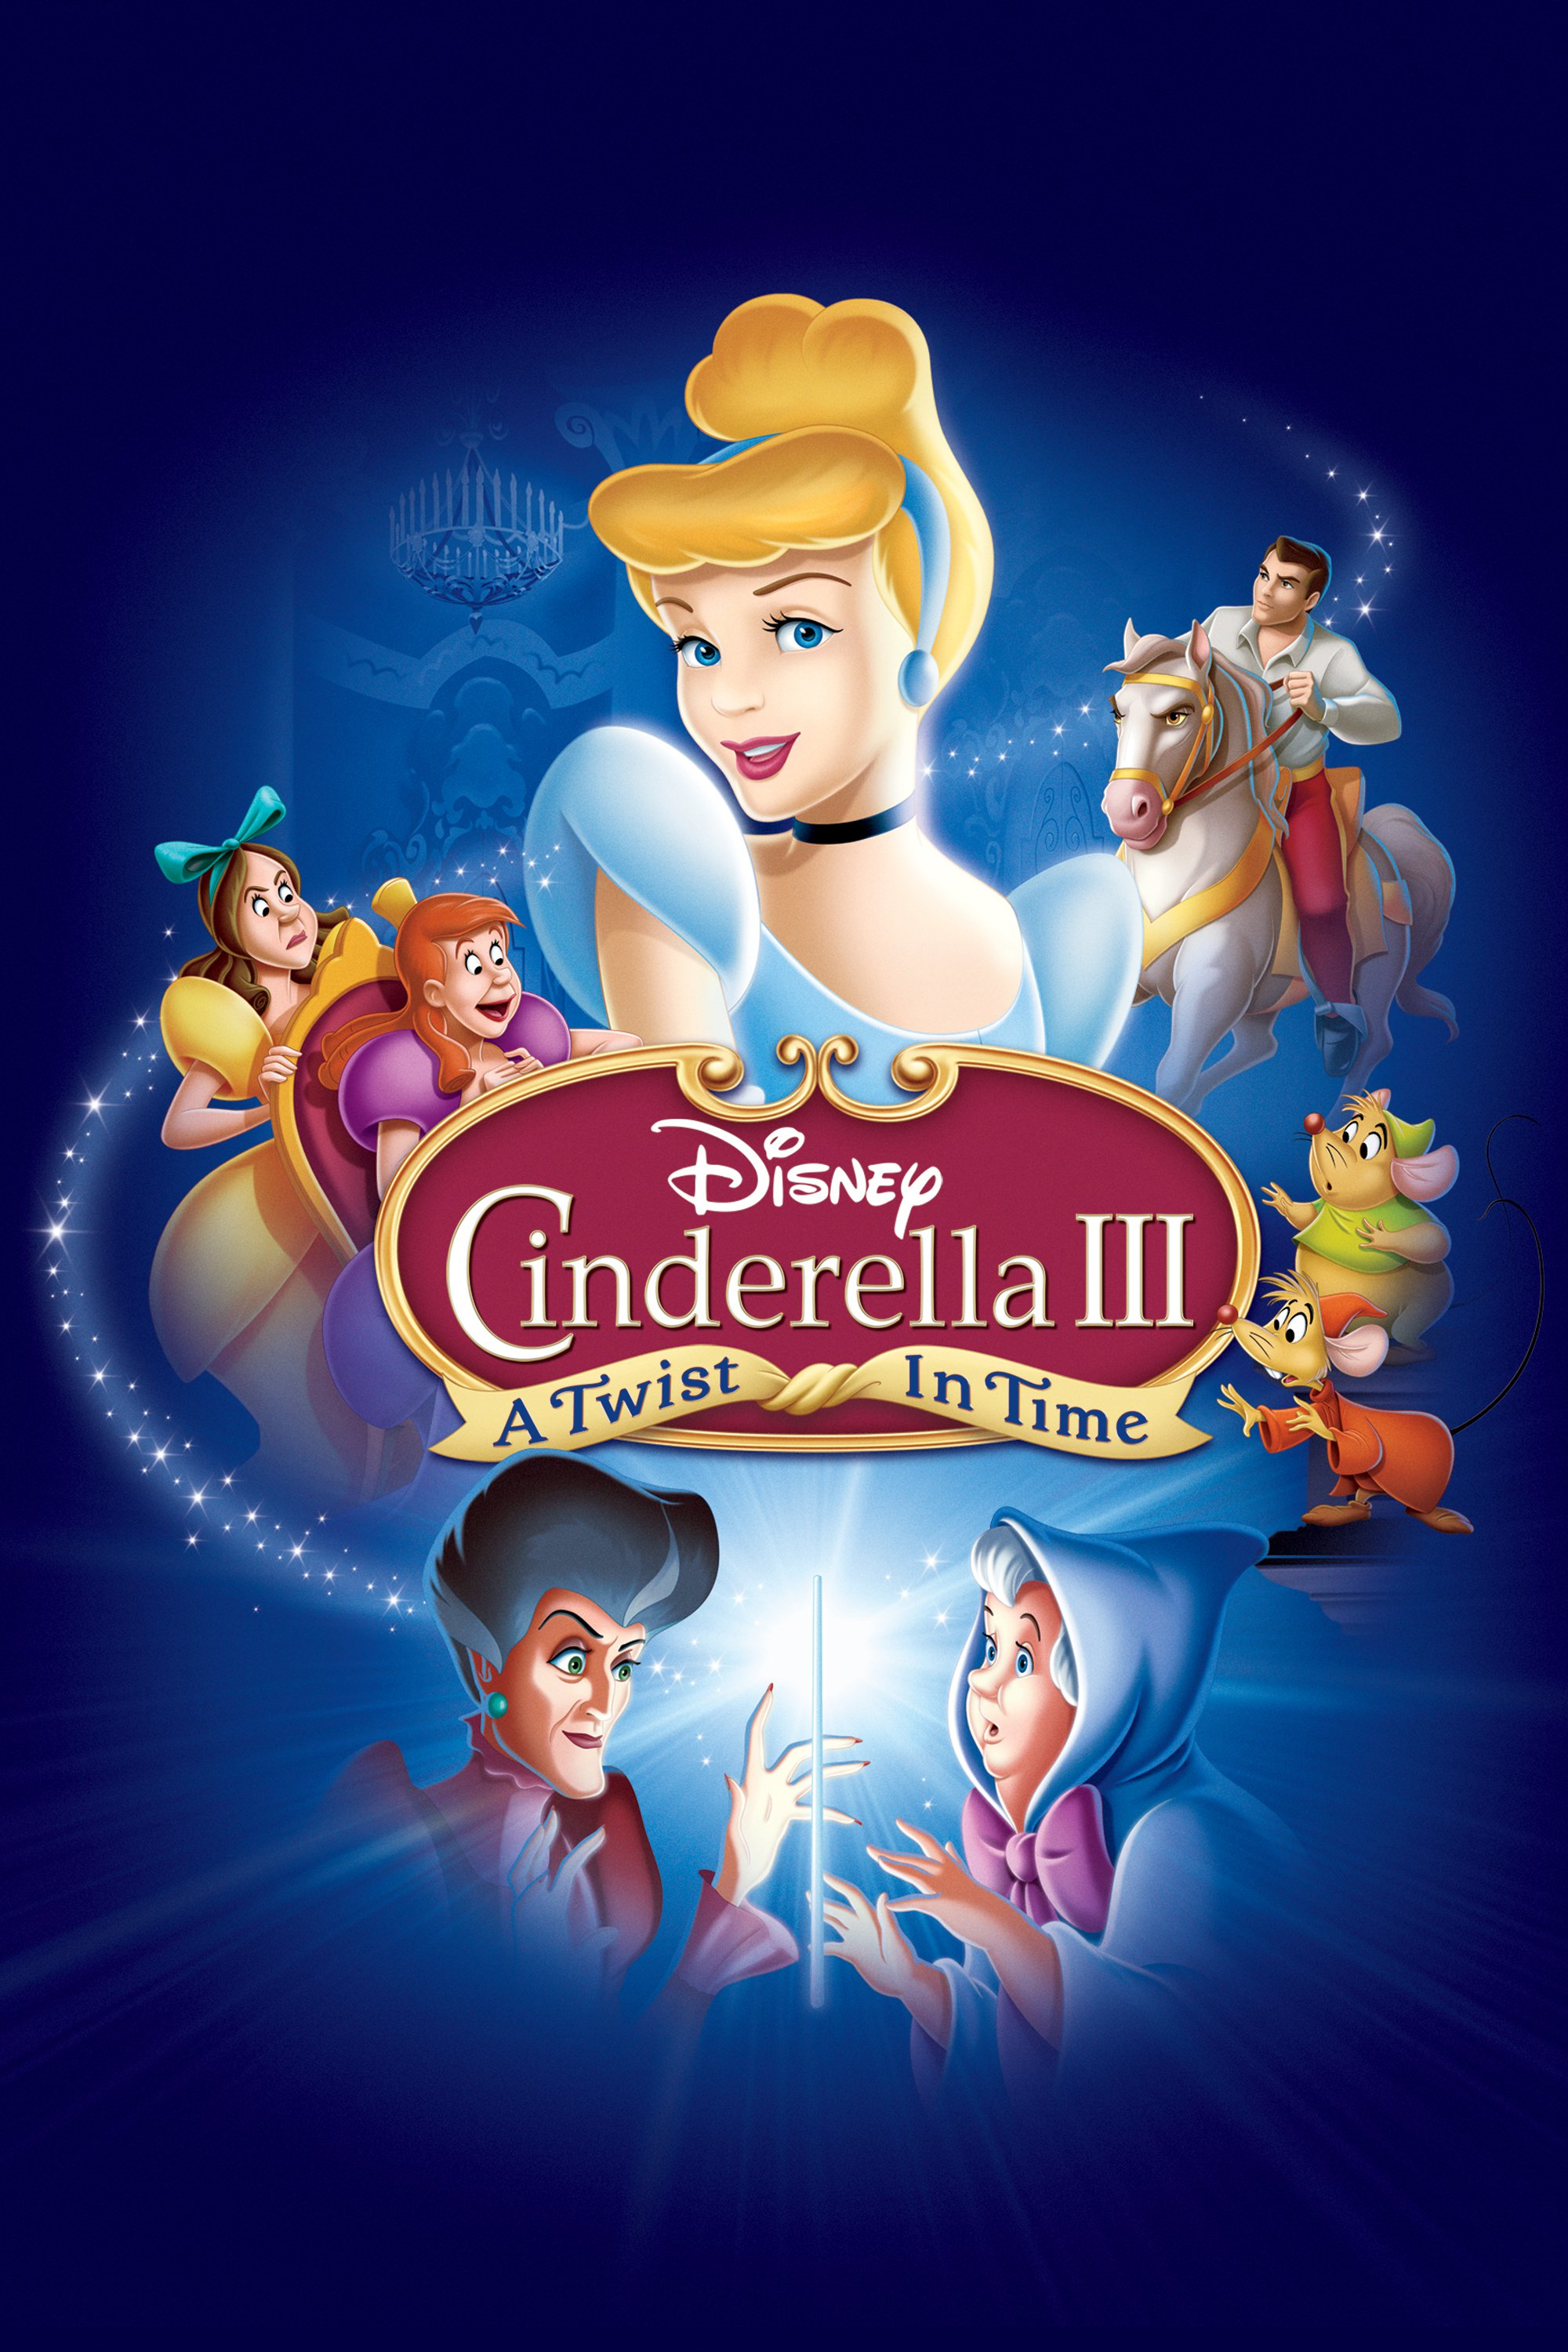 Cinderella: A Twist In Time